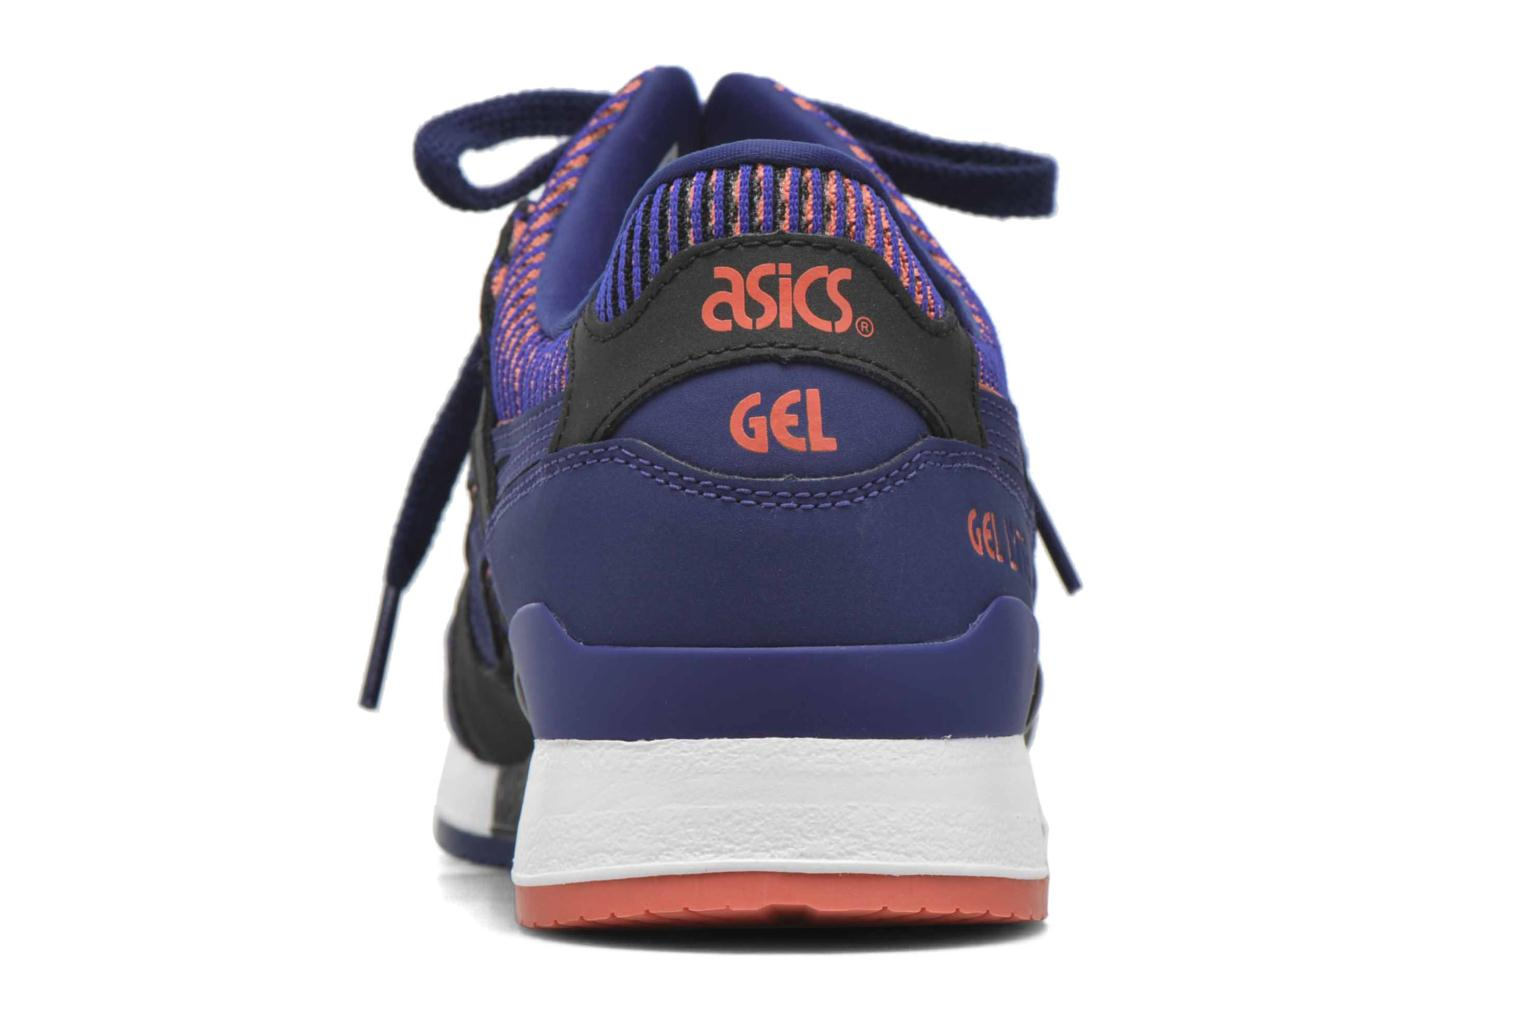 Gel-lyte III chameleoid Blue Print/Orange